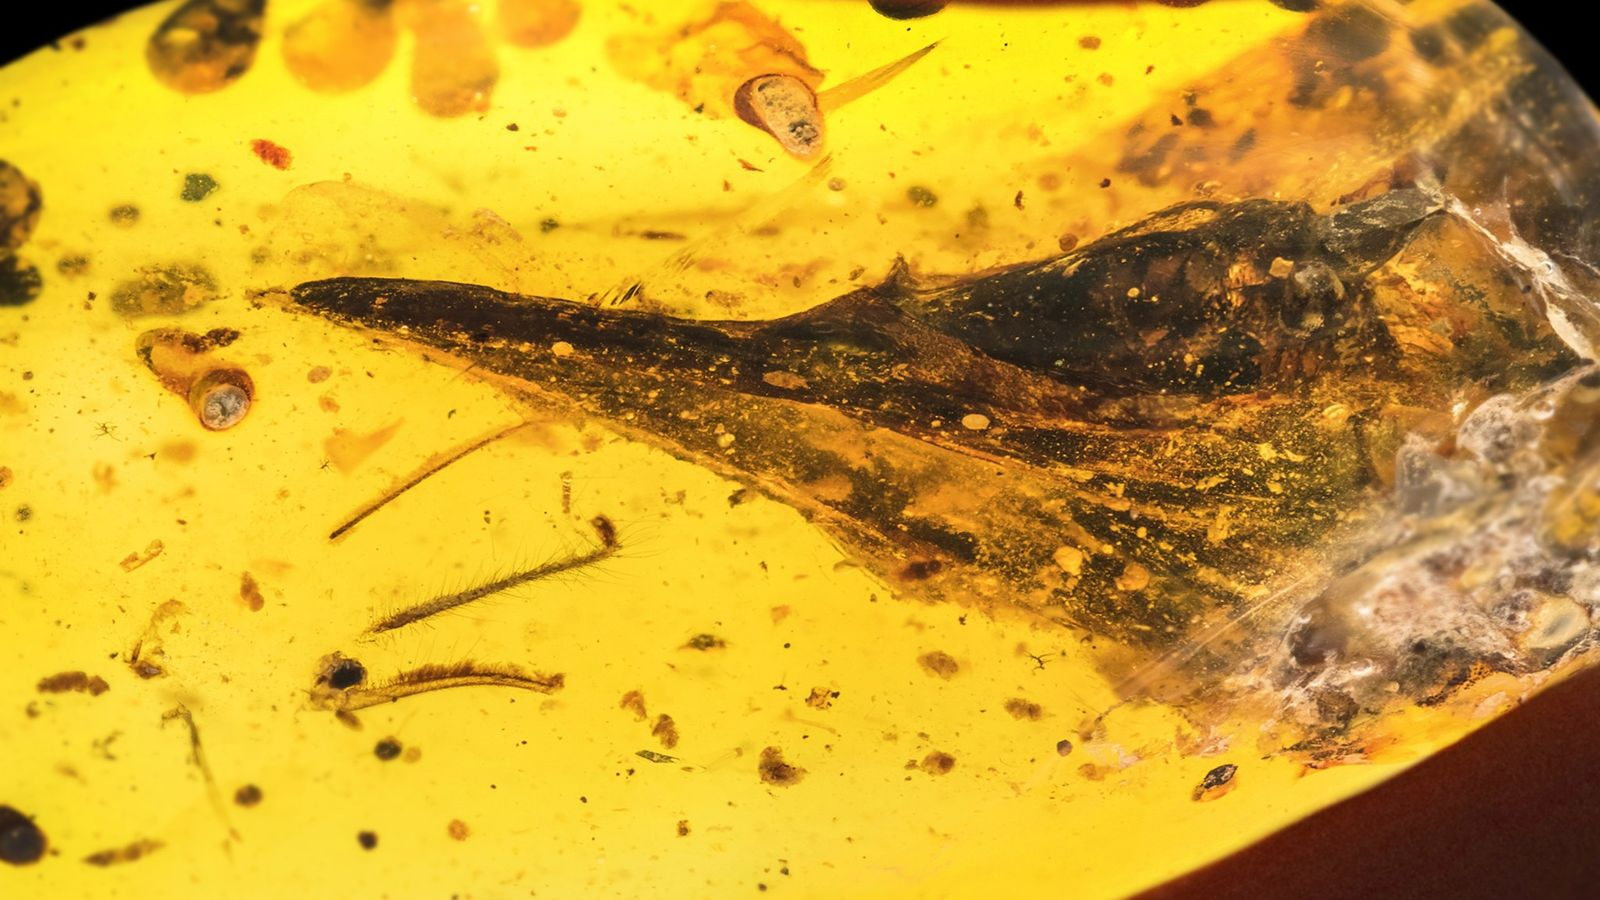 A piece of amber less than 1.5 inches wide contains the entire skull of Oculudentavis khaungraae, ...